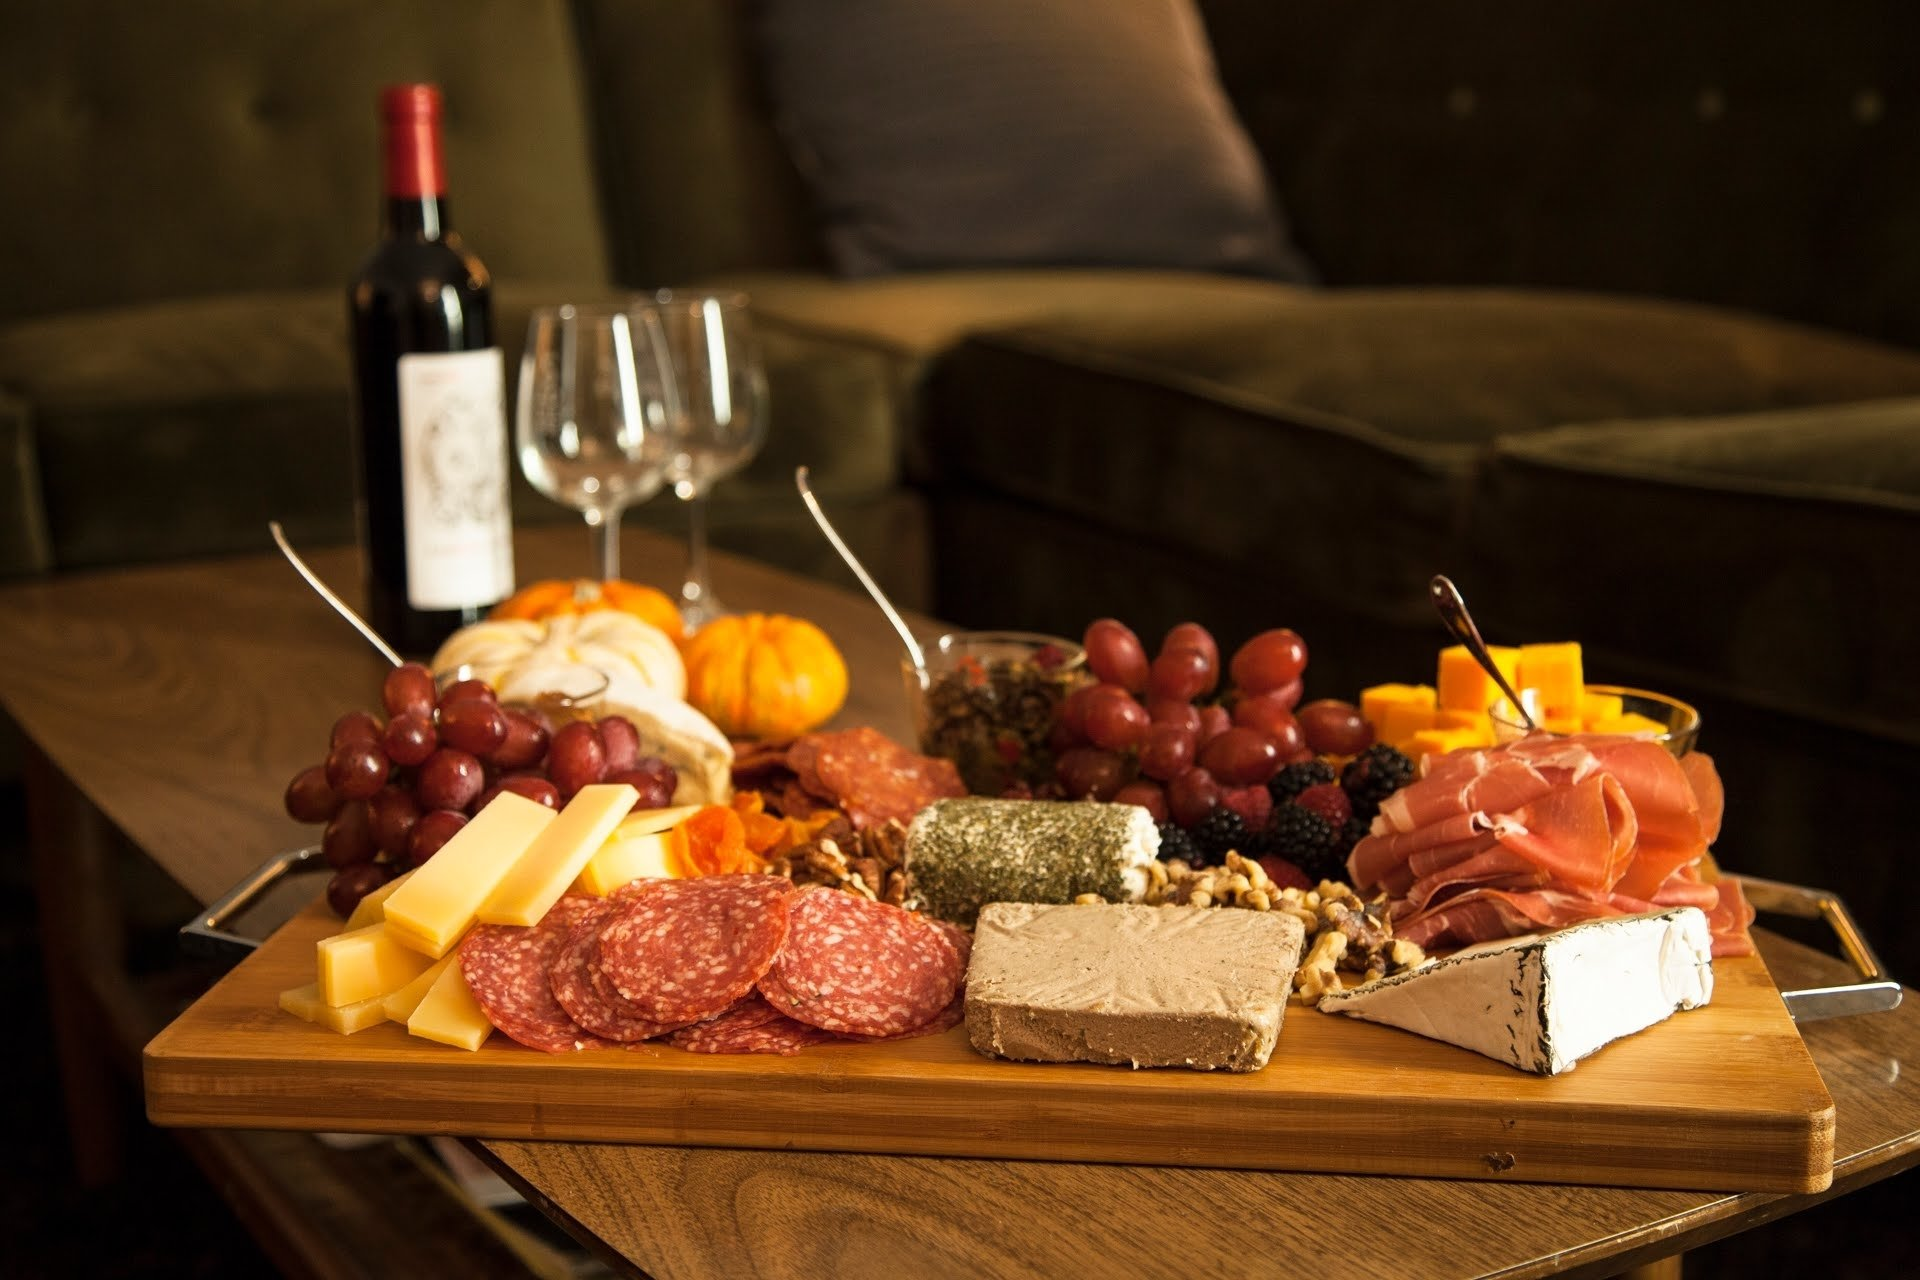 10 Gorgeous Cheese And Meat Platter Ideas decadent meat cheese platter youtube 2 2020